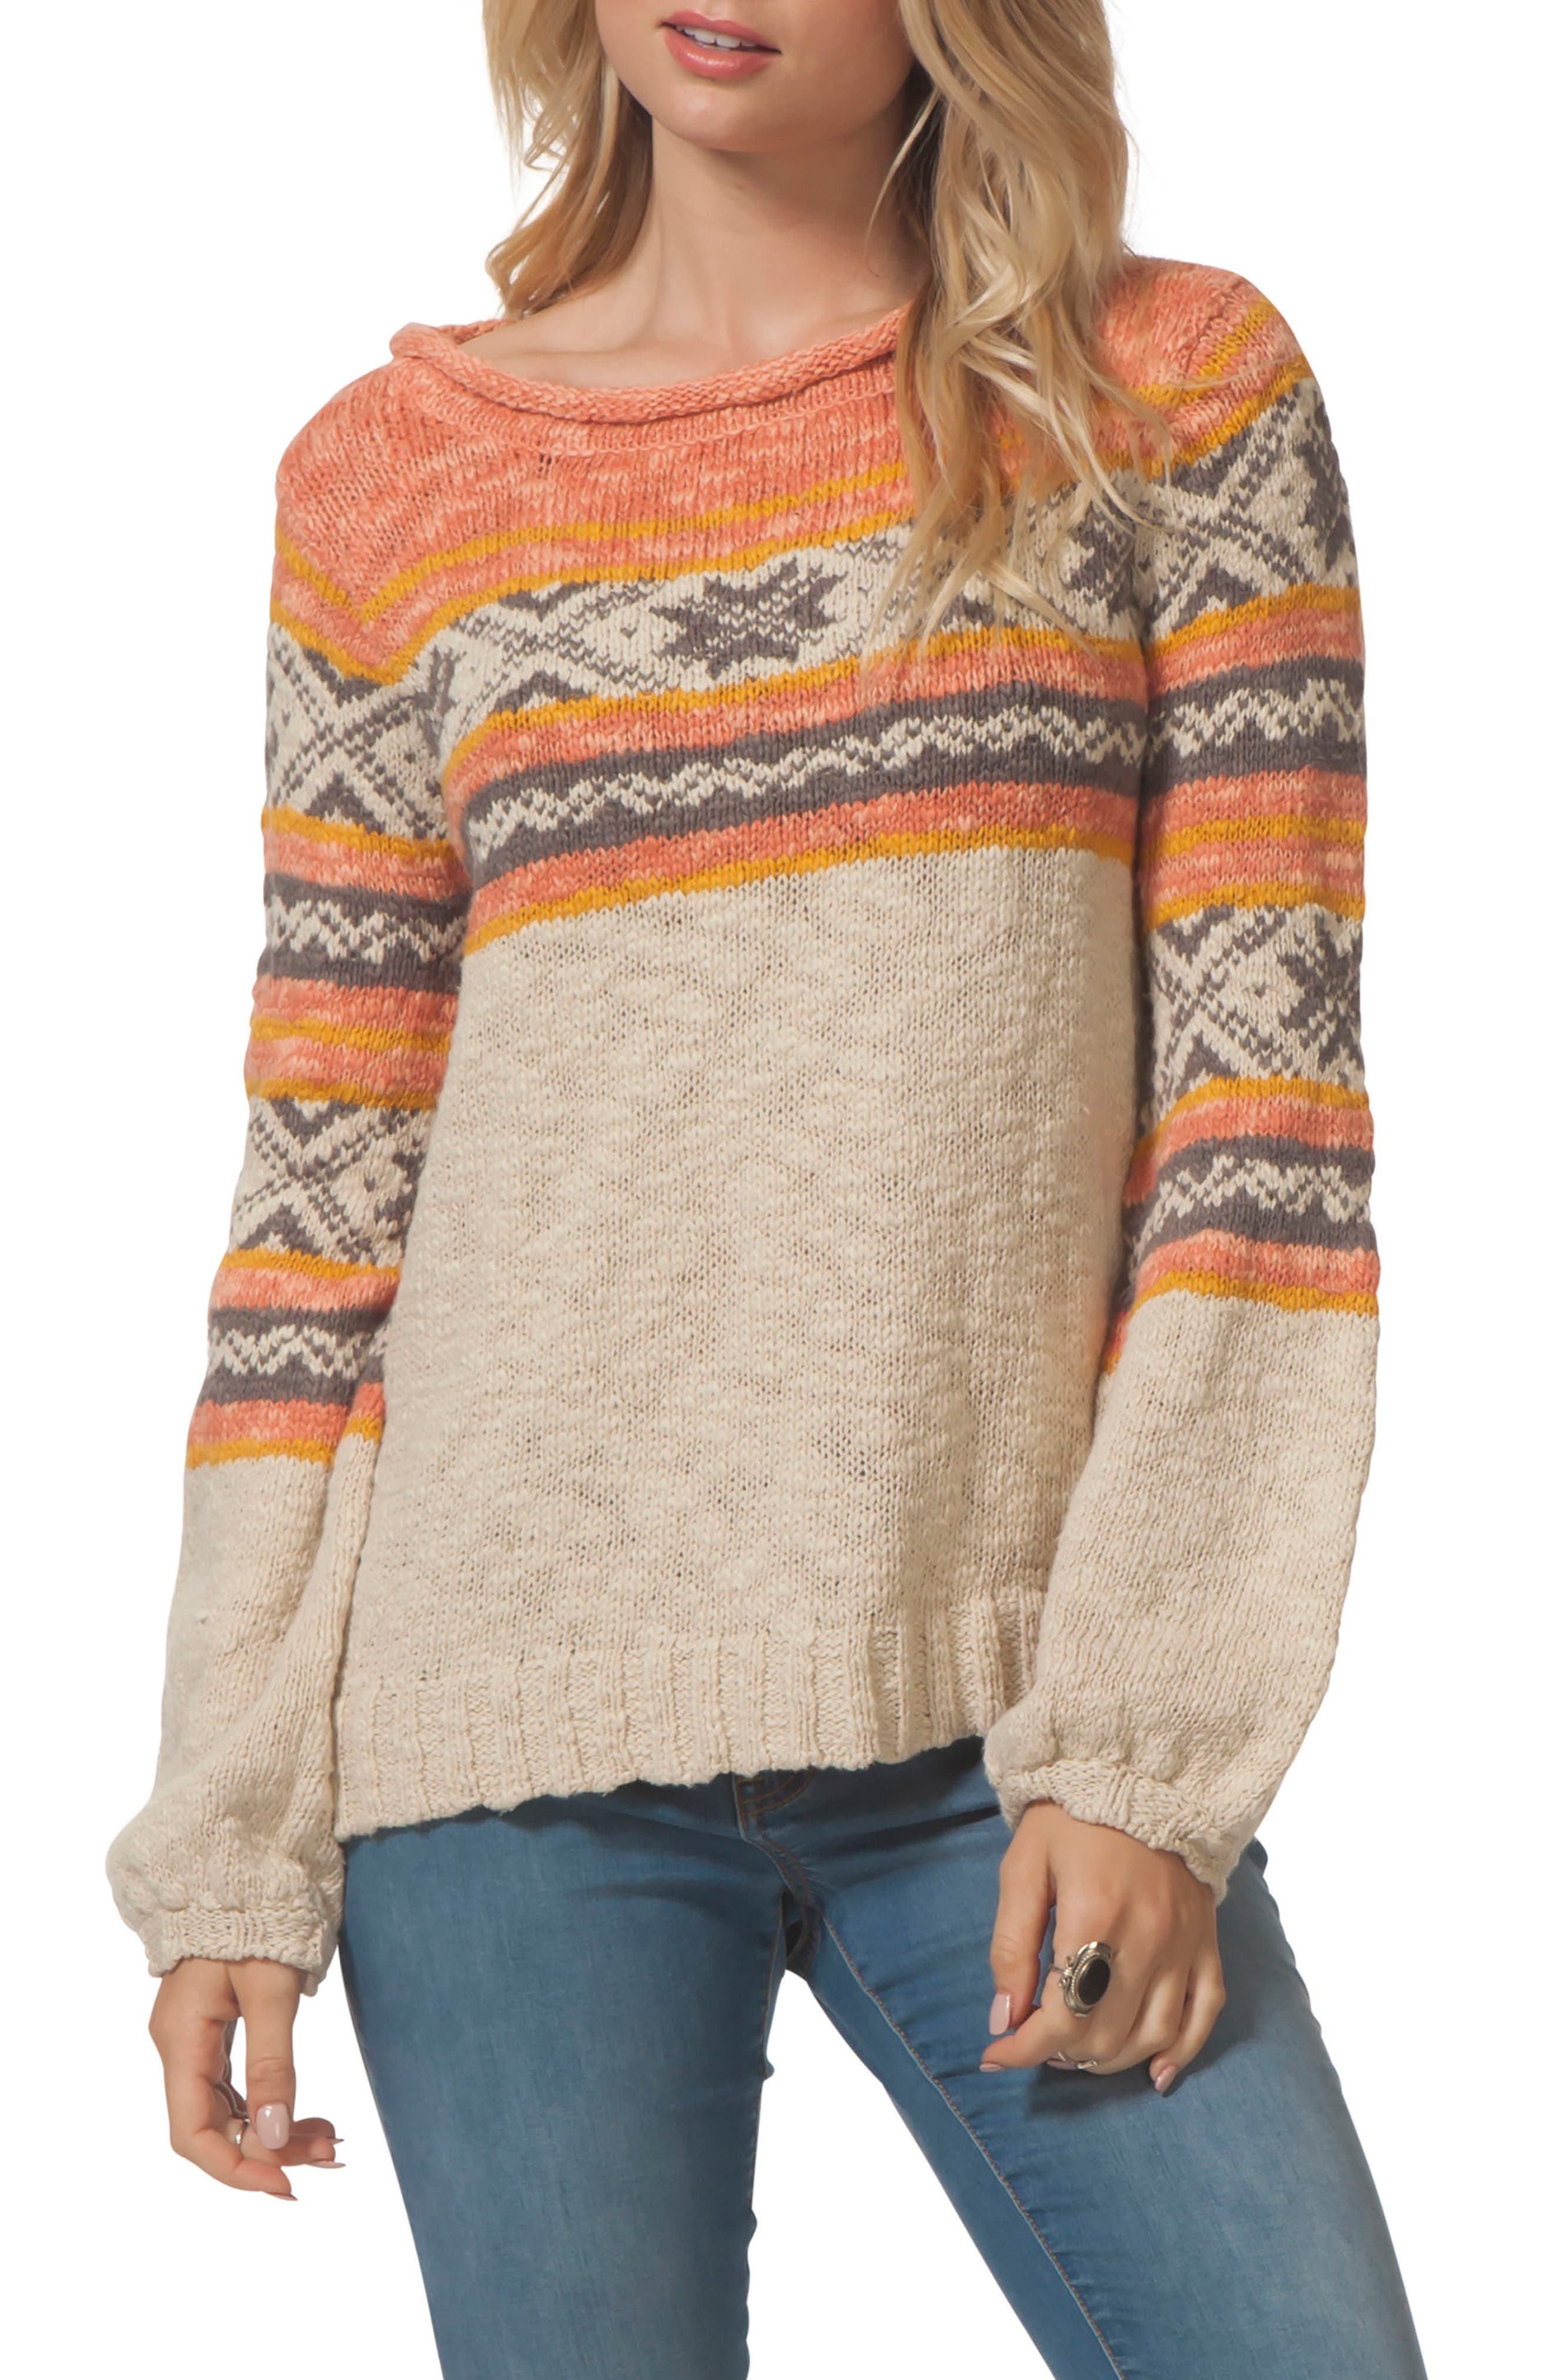 Snowed In Sweater,                             Main thumbnail 1, color,                             901